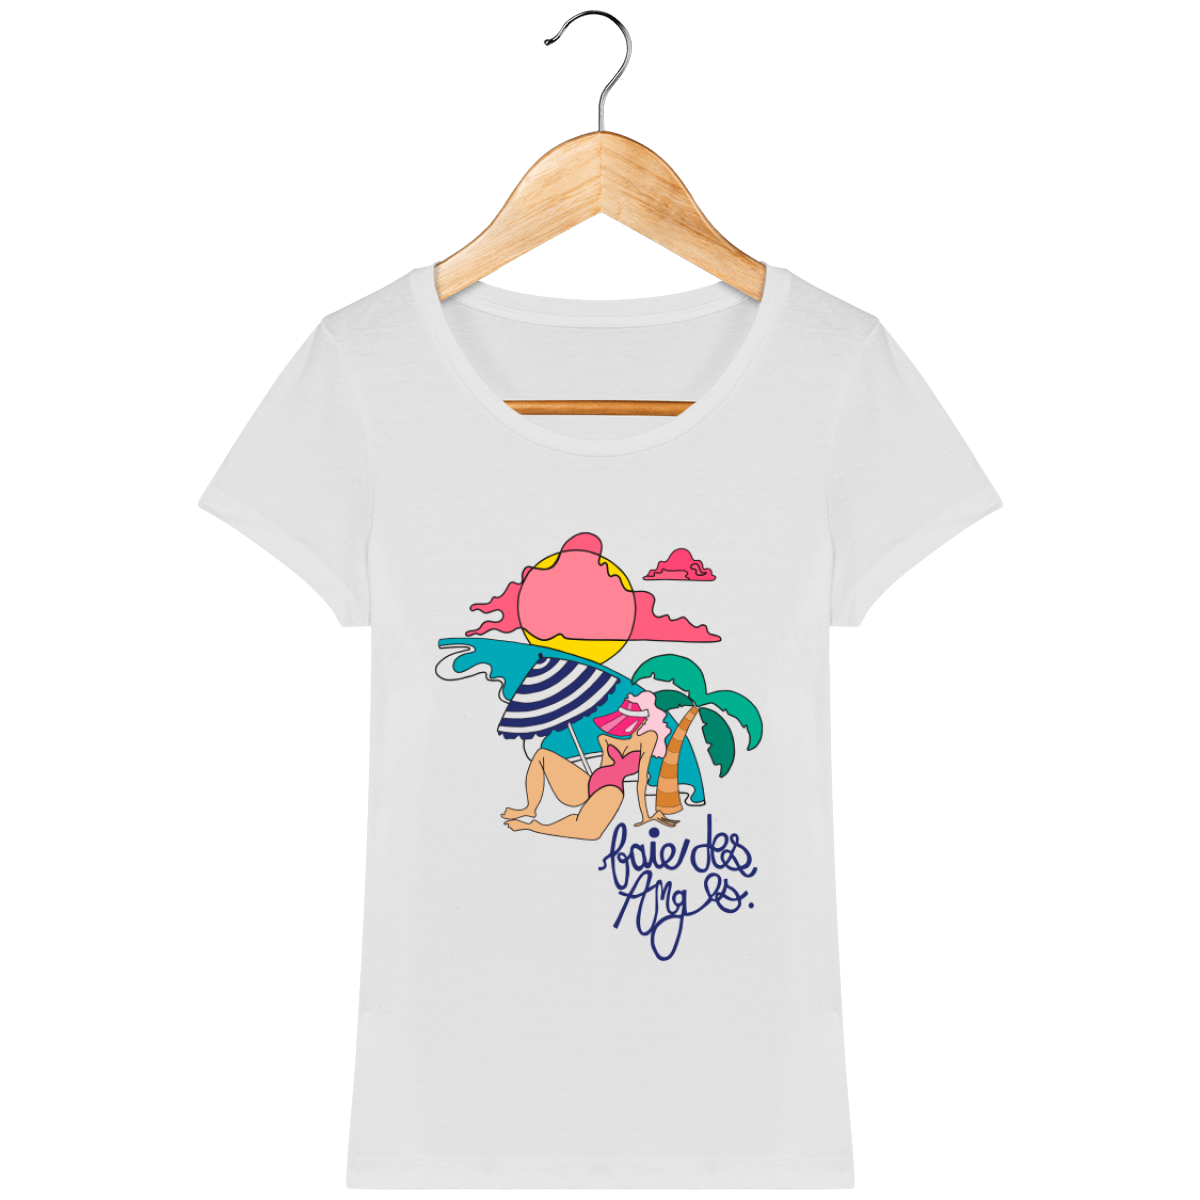 Tee Shirt Bio ♀ Le Style Jeje X Ficanas, Baie des Anges